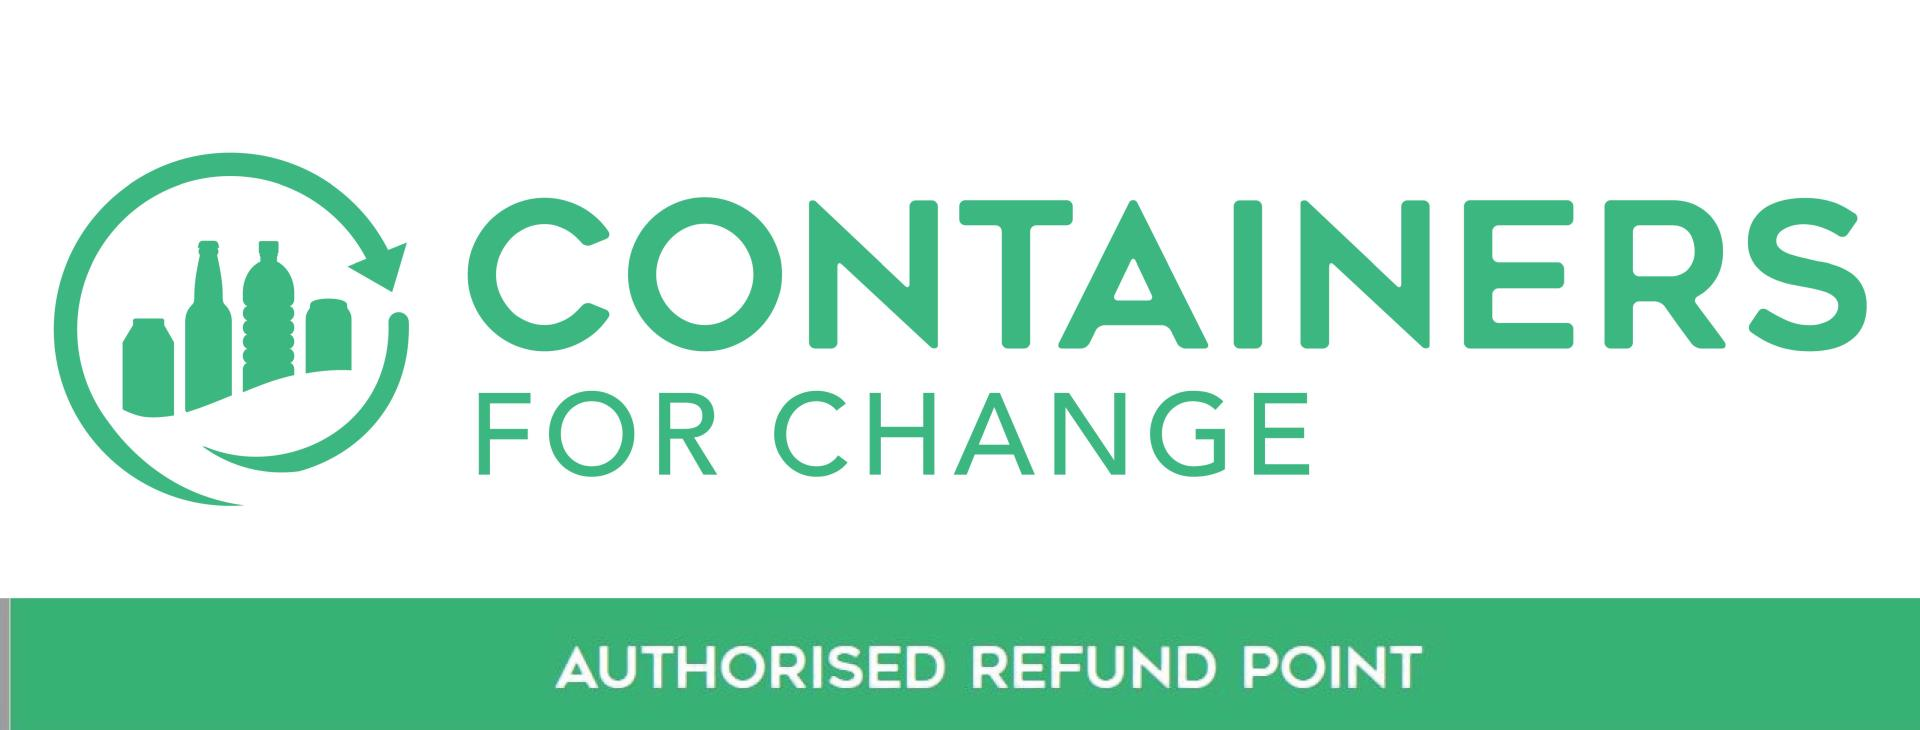 Containers for Change at Denmark Tip